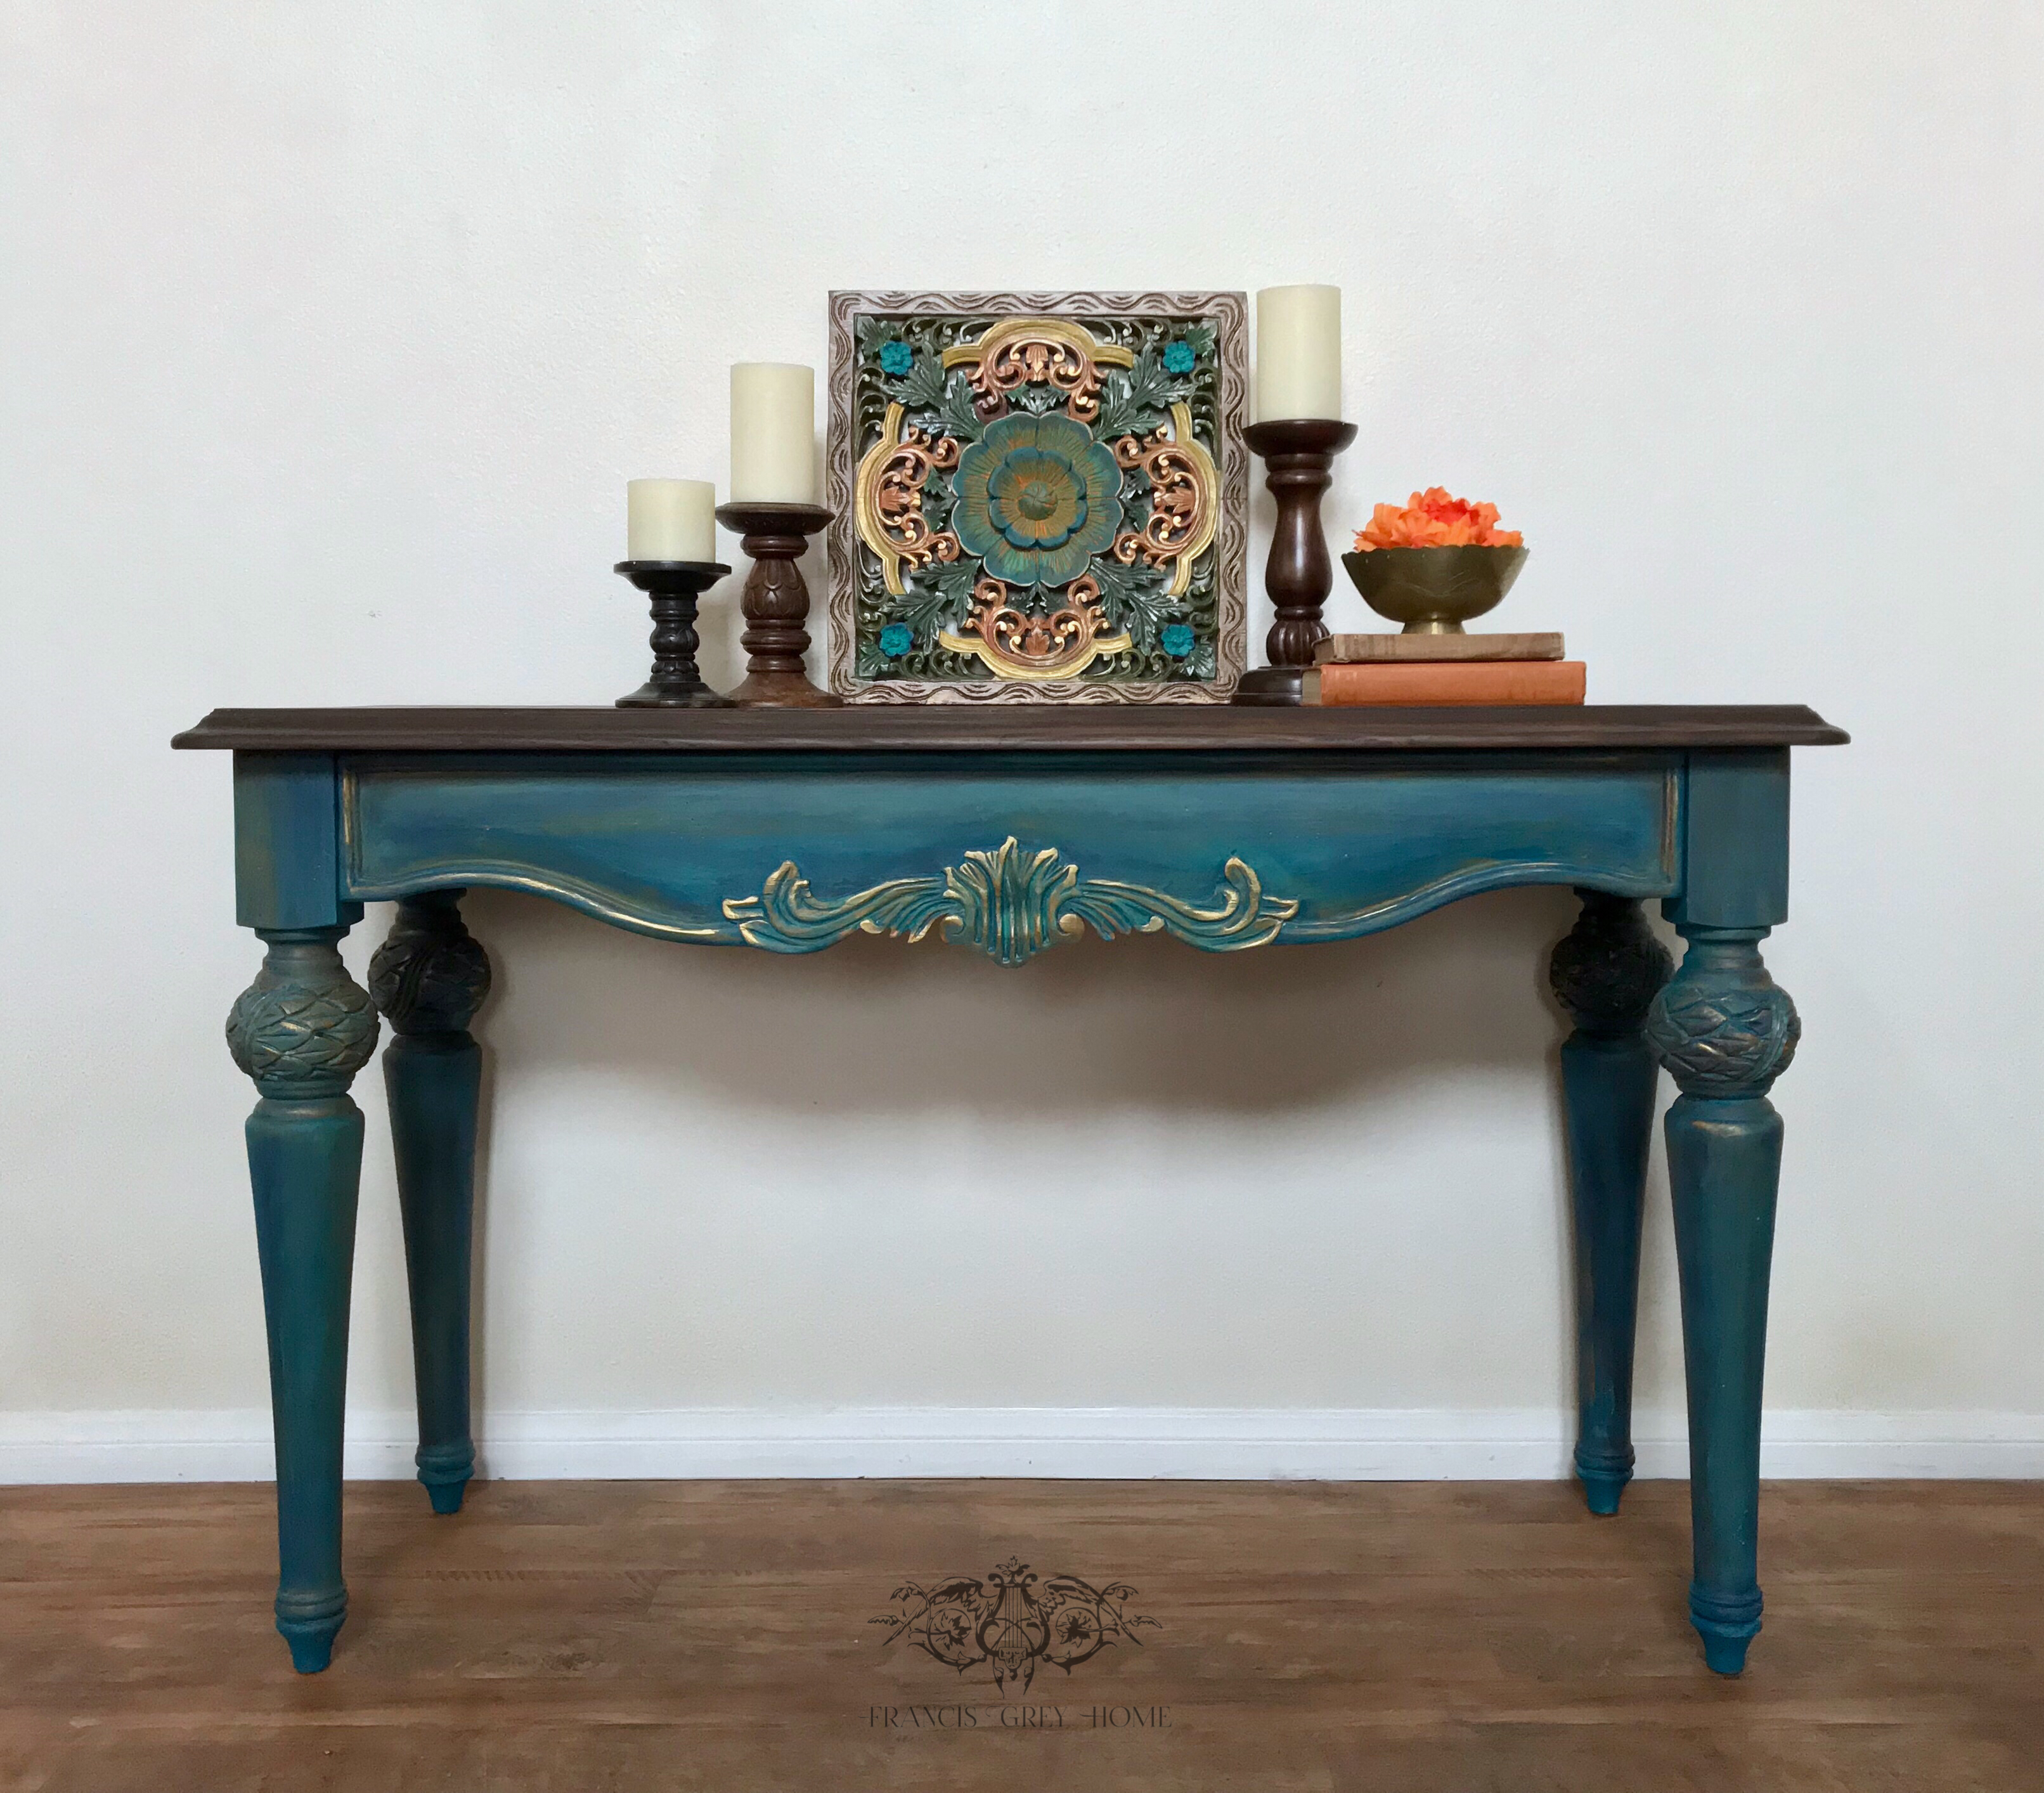 Boho Entry Table Rustic Entry Table Chalk Paint Entry Table Color Blending Carved Dia De Los Muertos Blending Rustic Entry Table Entry Table Rustic Entry